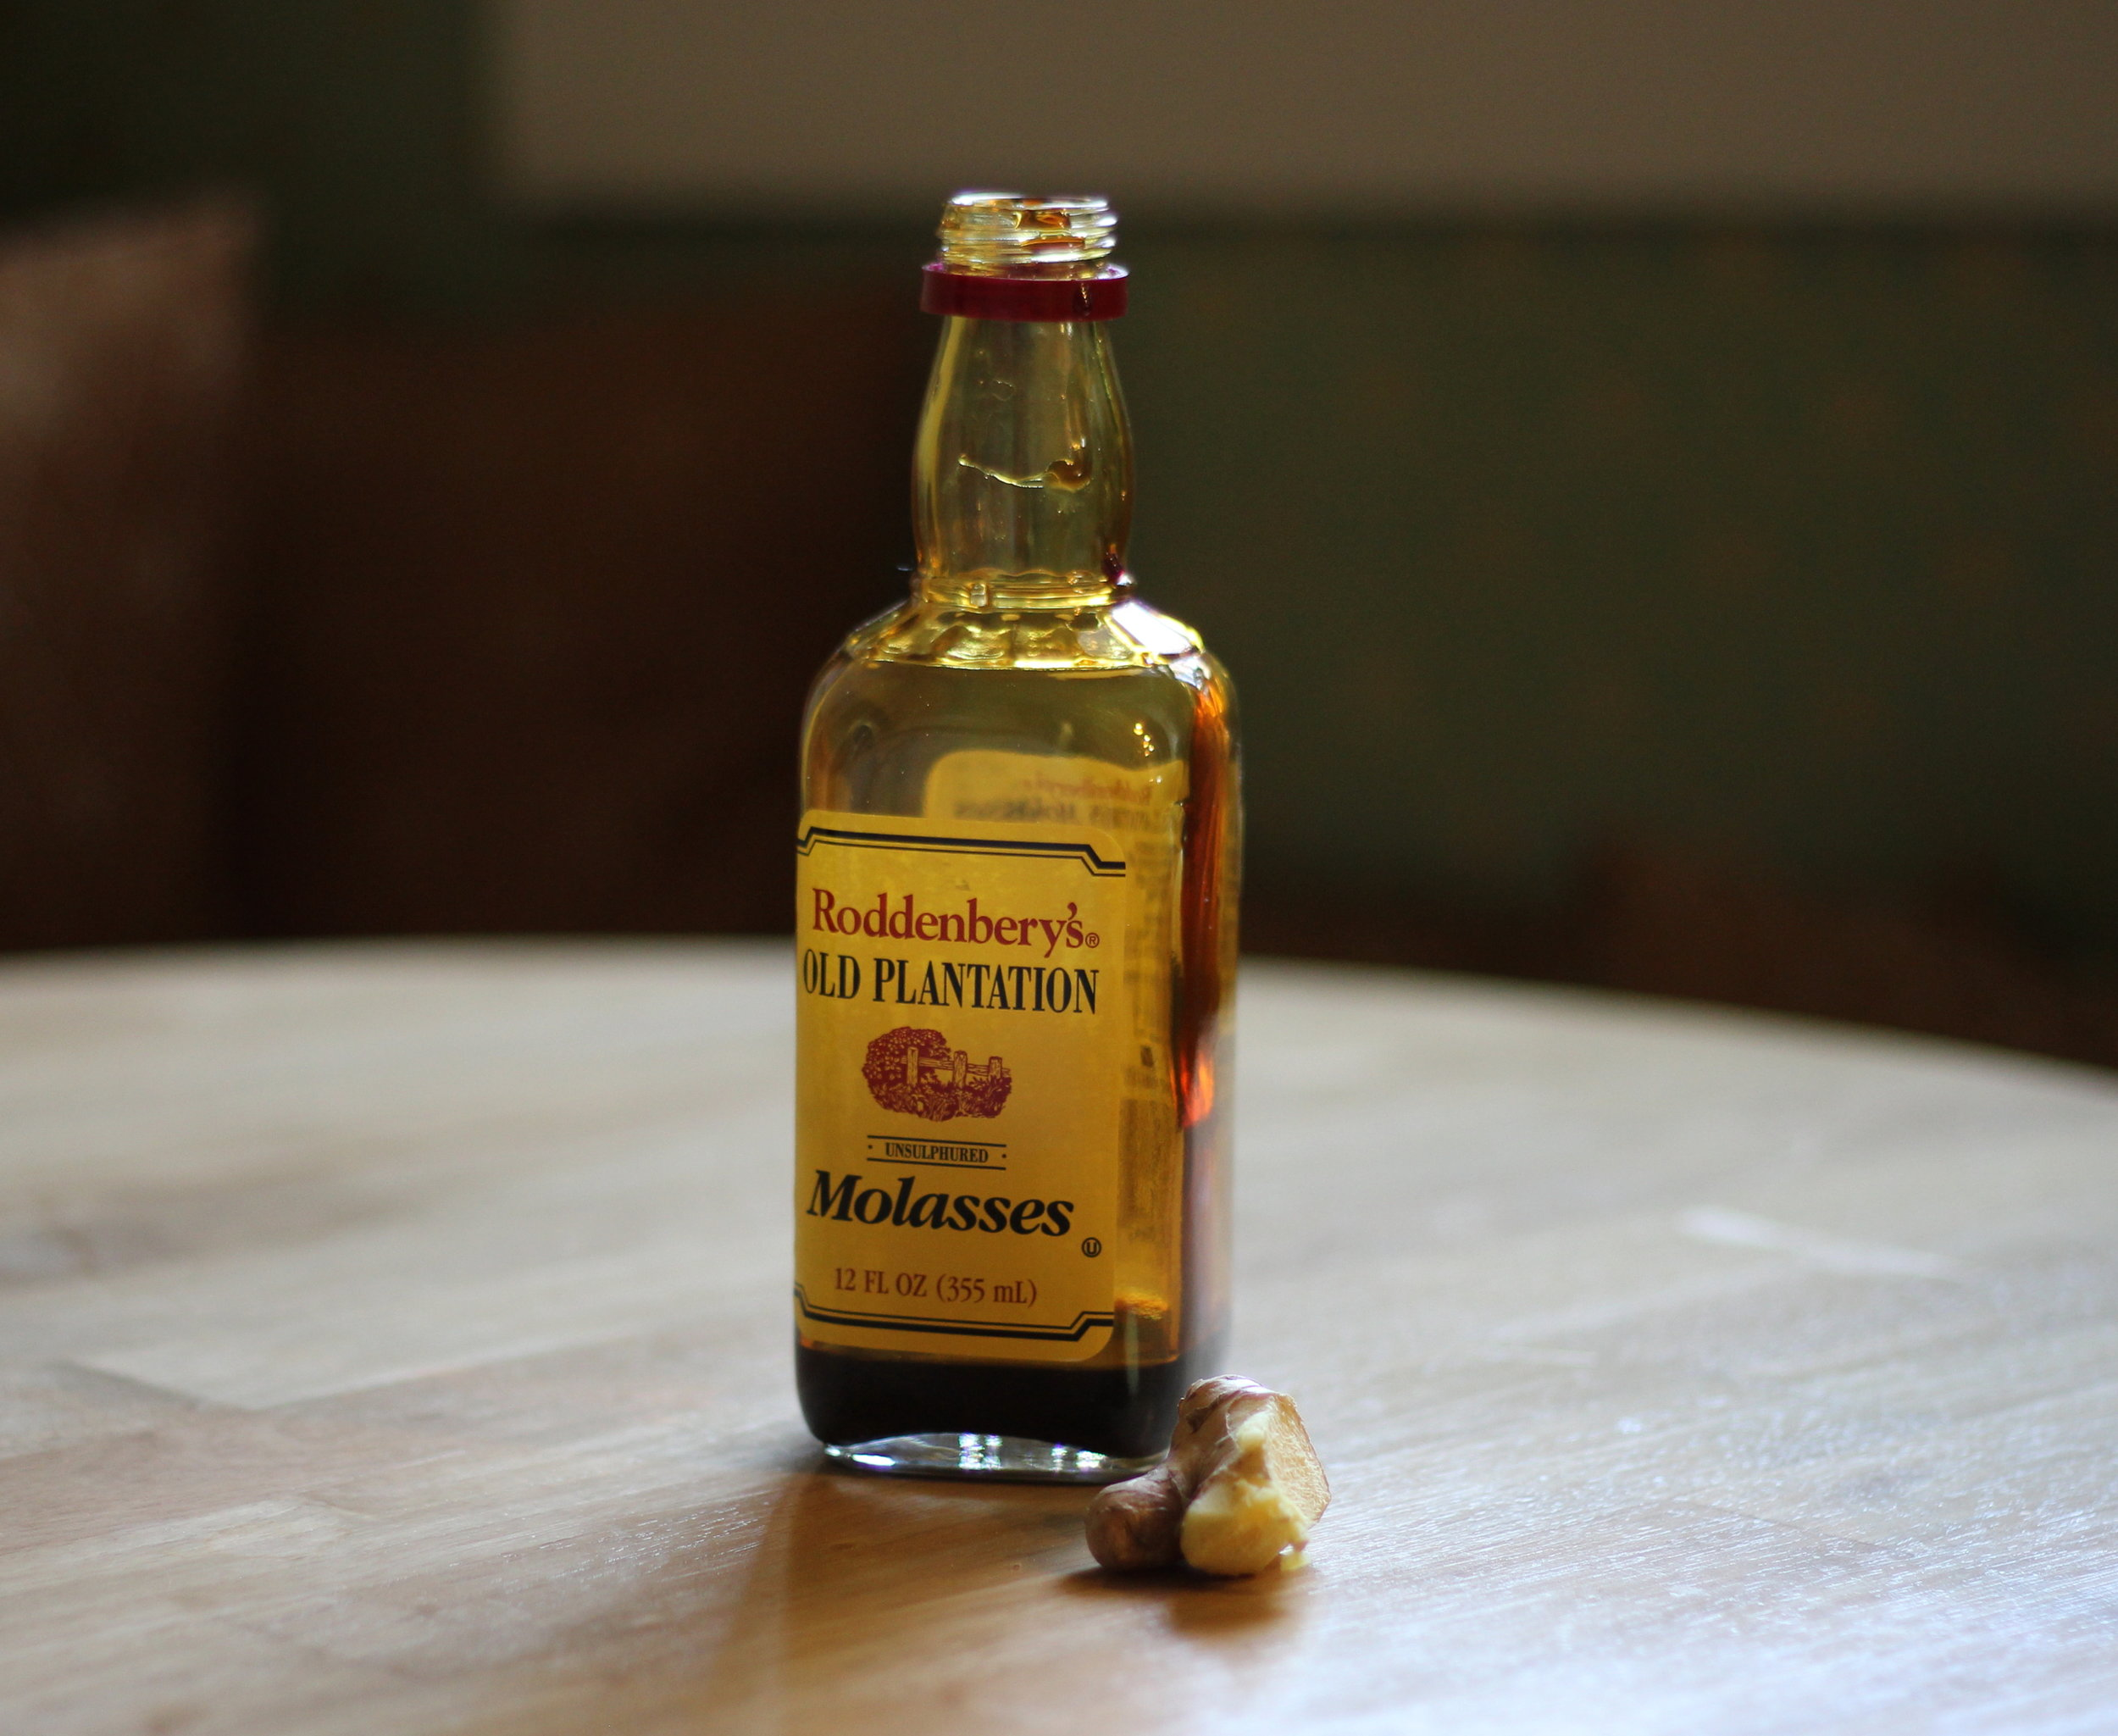 did I buy this brand of molasses because it looks like a tiny liquor bottle? Yes. That is accurate.